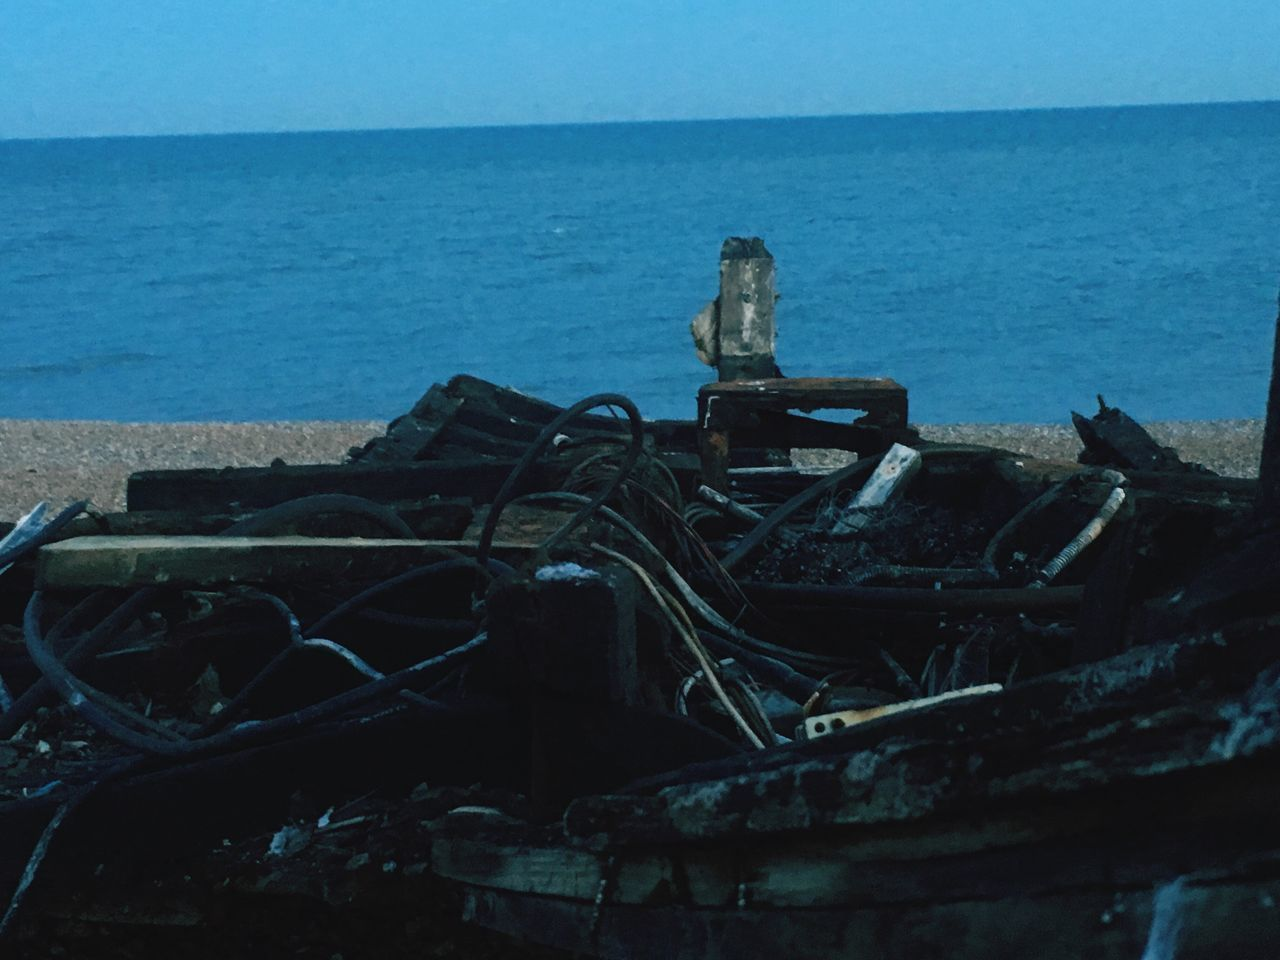 No matter how bad the mess is. It can always be cleaned Horizon Over Water Sea Water Abandoned Nature Beach Boat